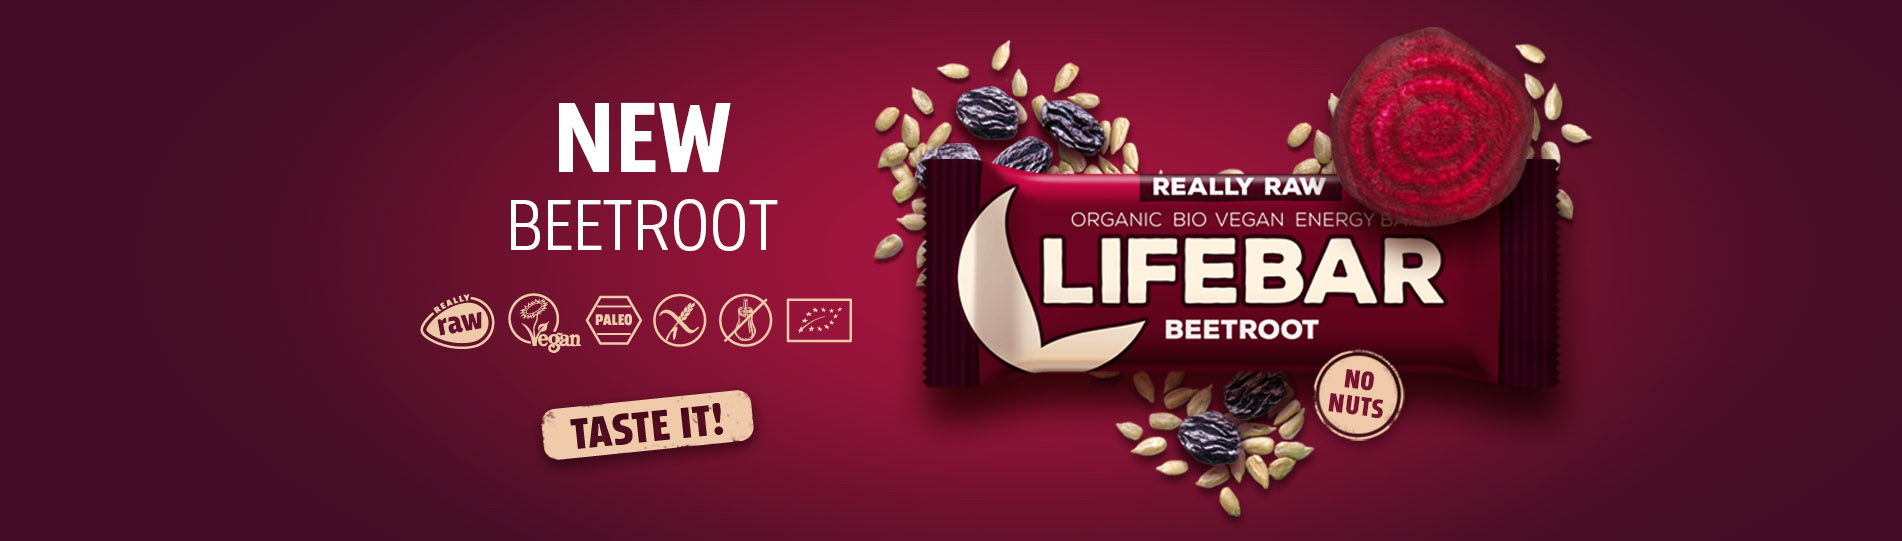 lifebar beetroot